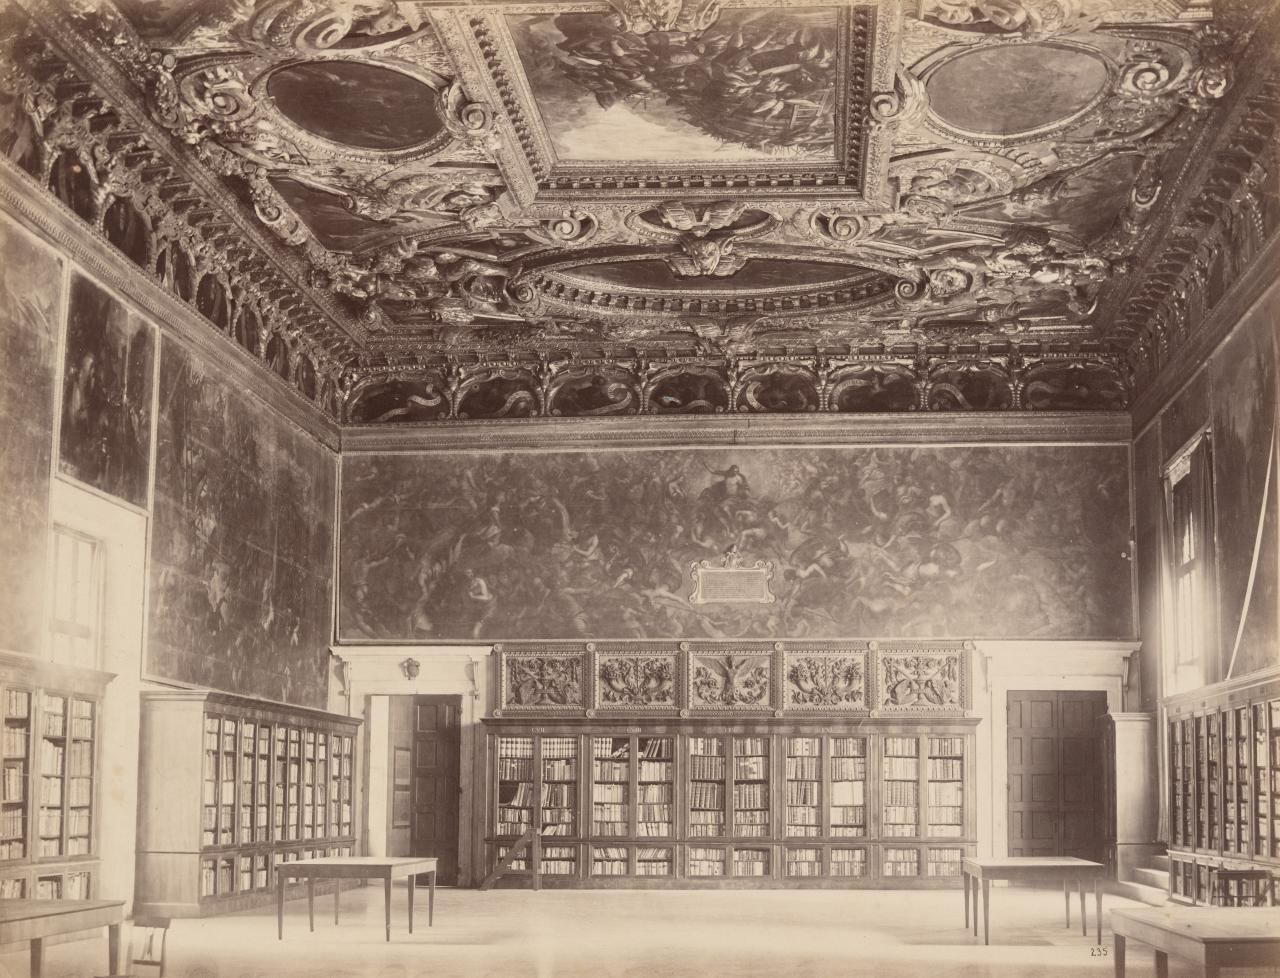 Portion of library, Ducal Palace, Venice